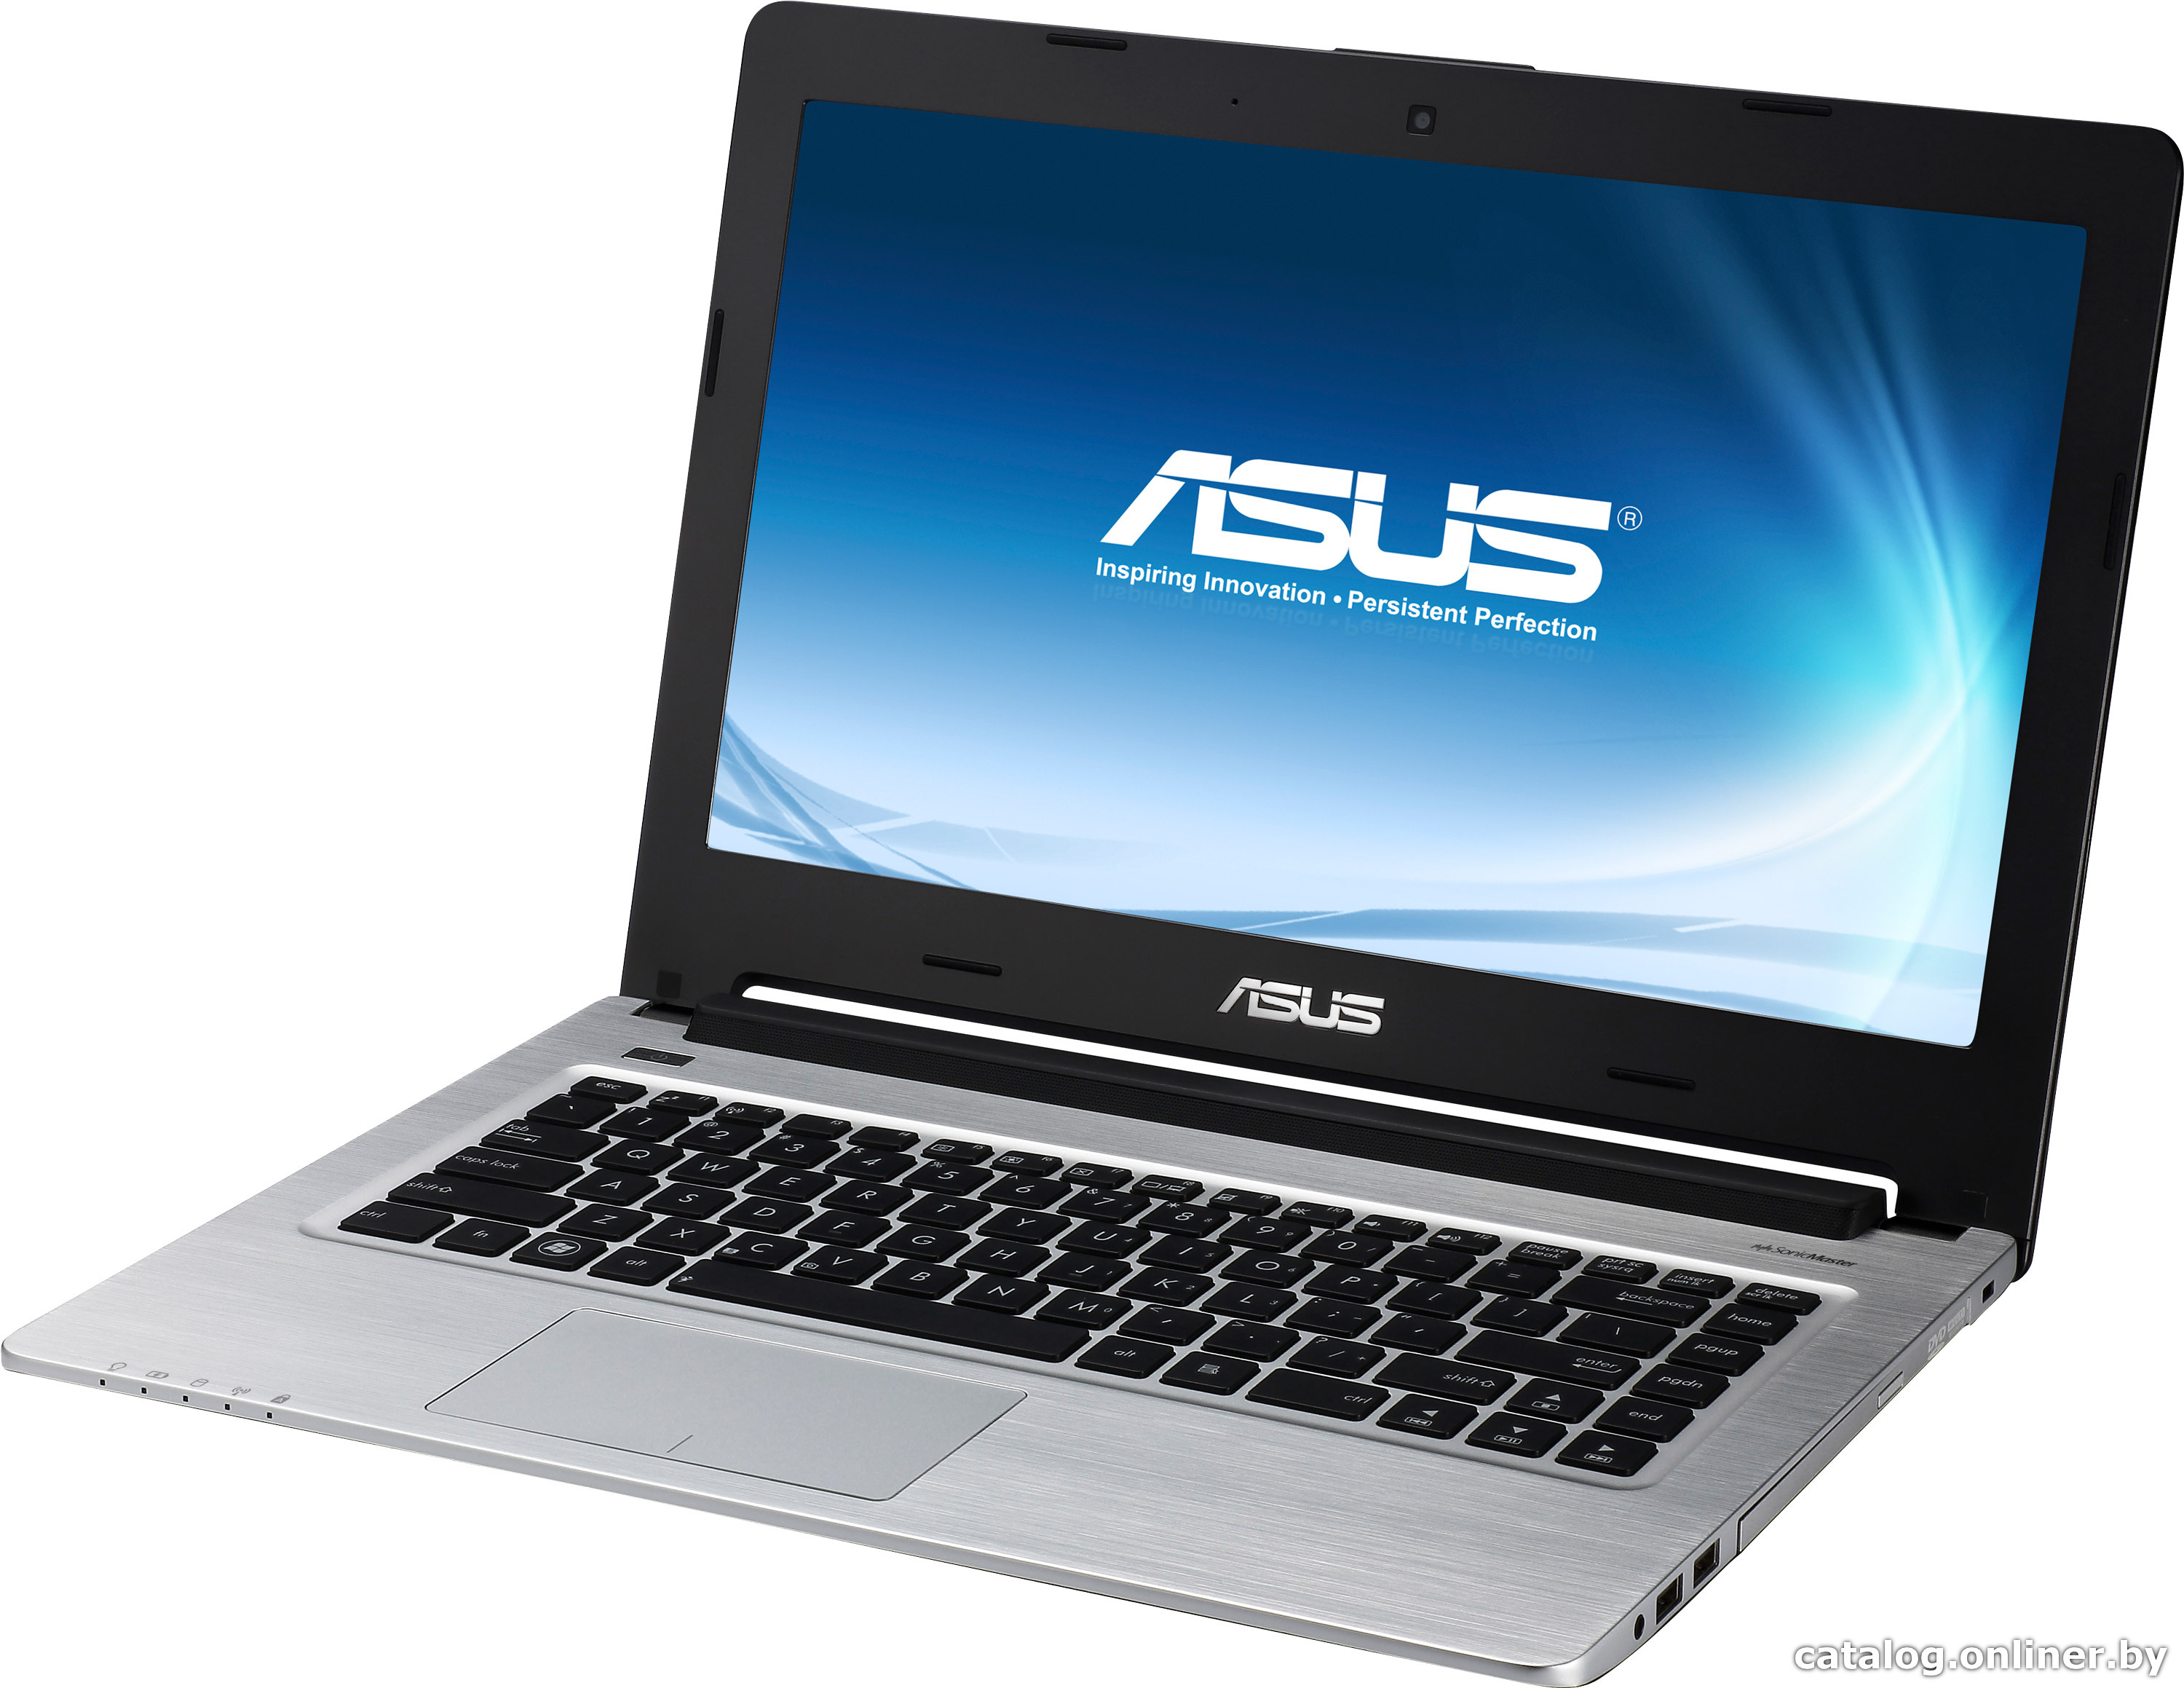 ASUS S46CB INTEL WLAN DRIVERS FOR WINDOWS 8